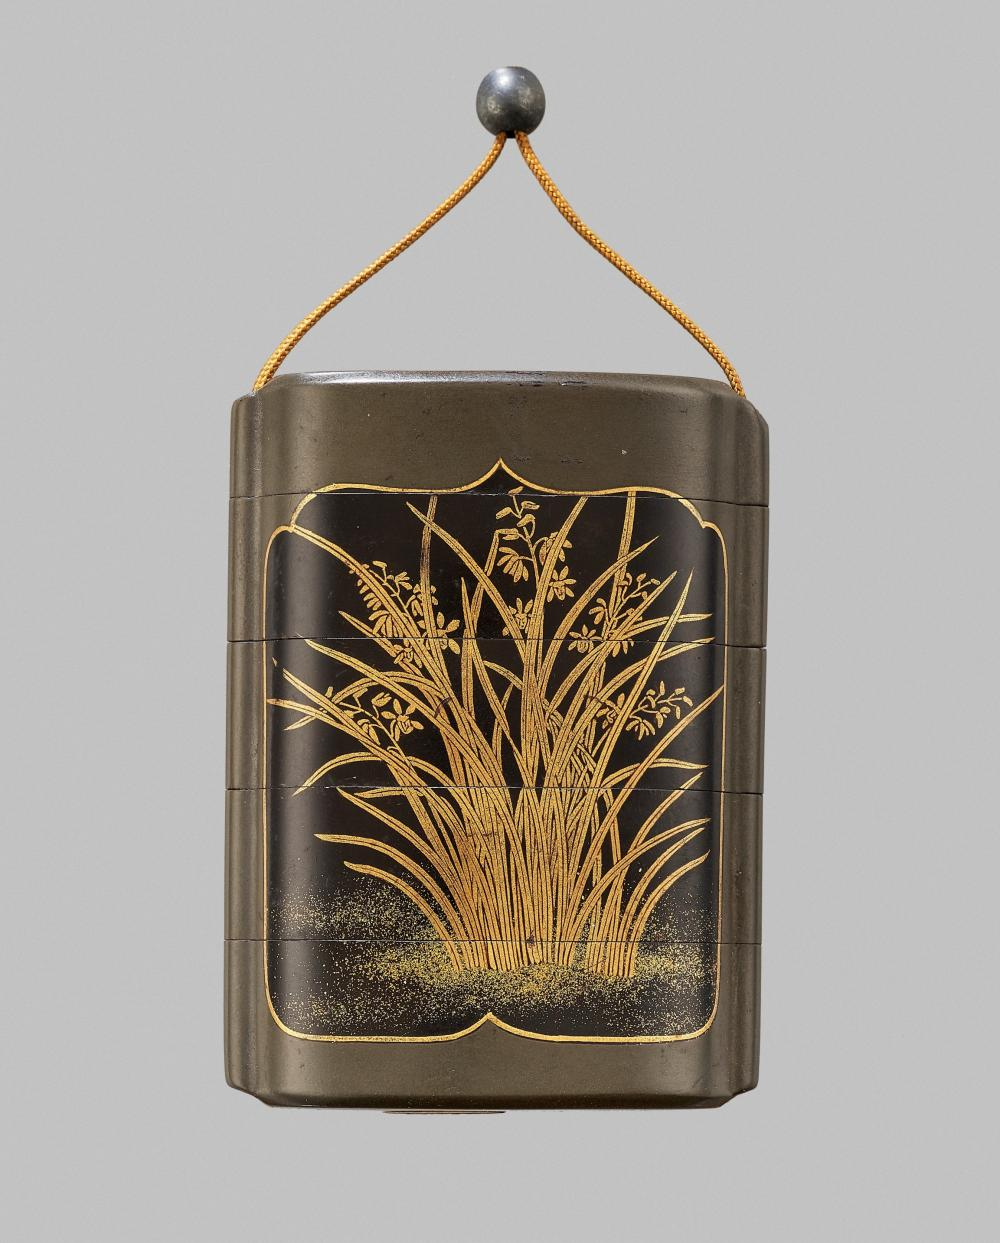 A FINE FOUR-CASE LACQUER INRO WITH LILIES, EX TOMKINSON COLLECTION